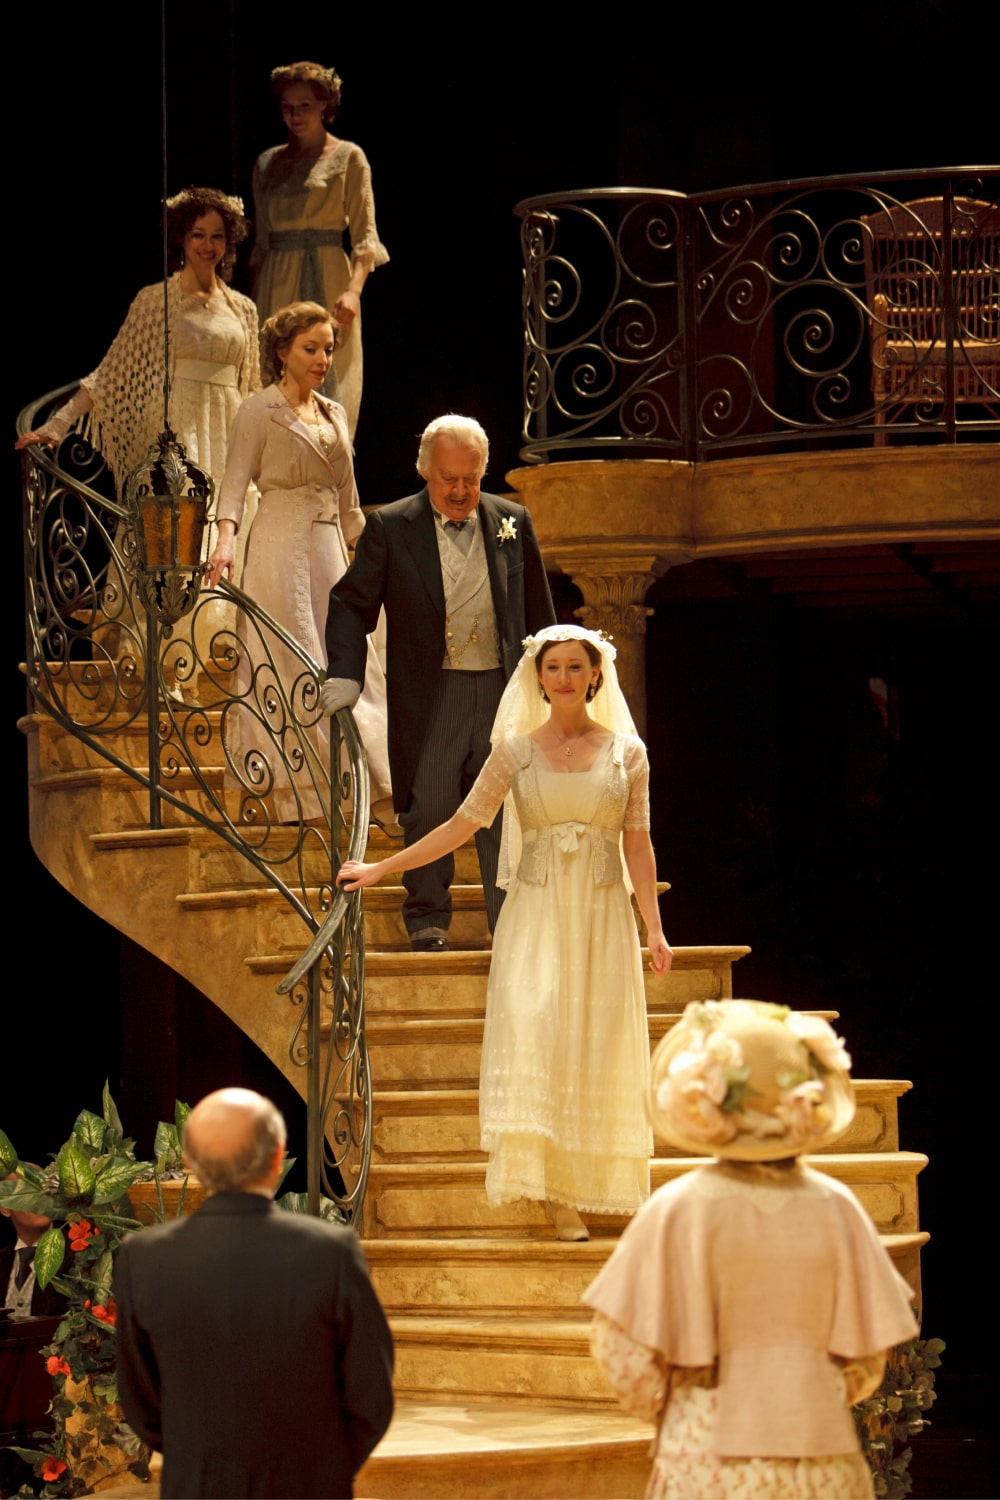 Bridal party descends curved staircase in warm light.